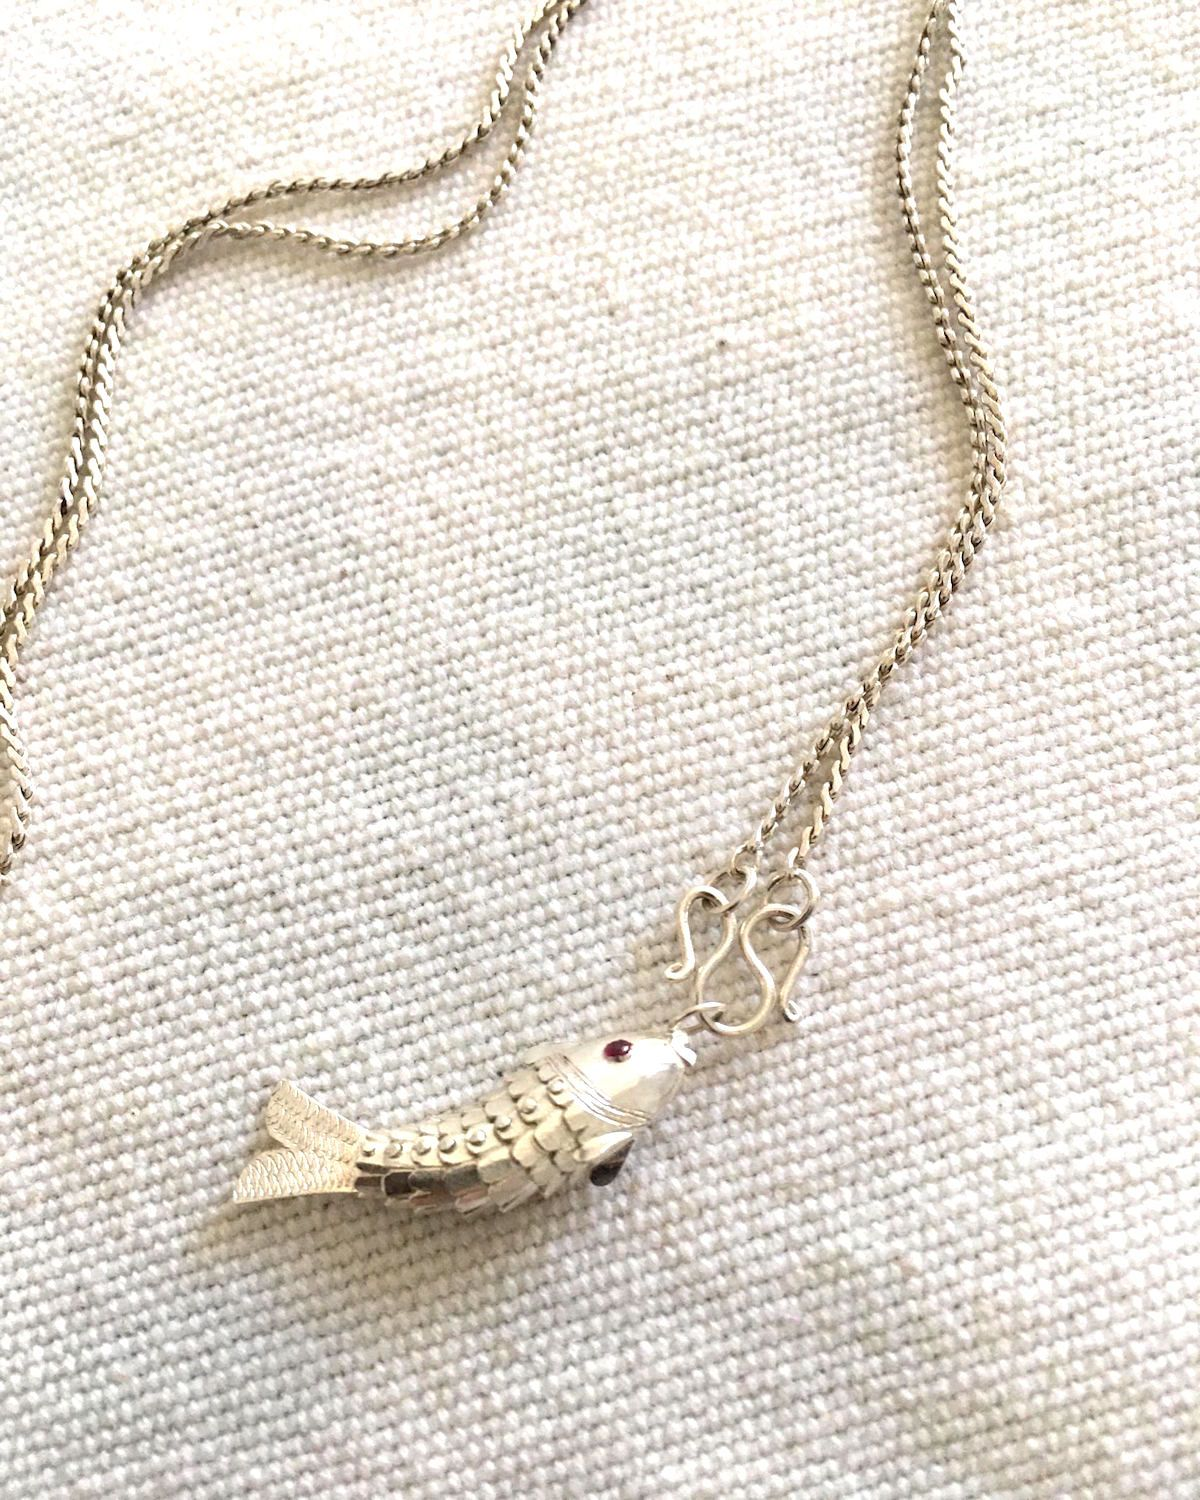 Articulated Silver Fish Pendant and Chain - YGN Collective